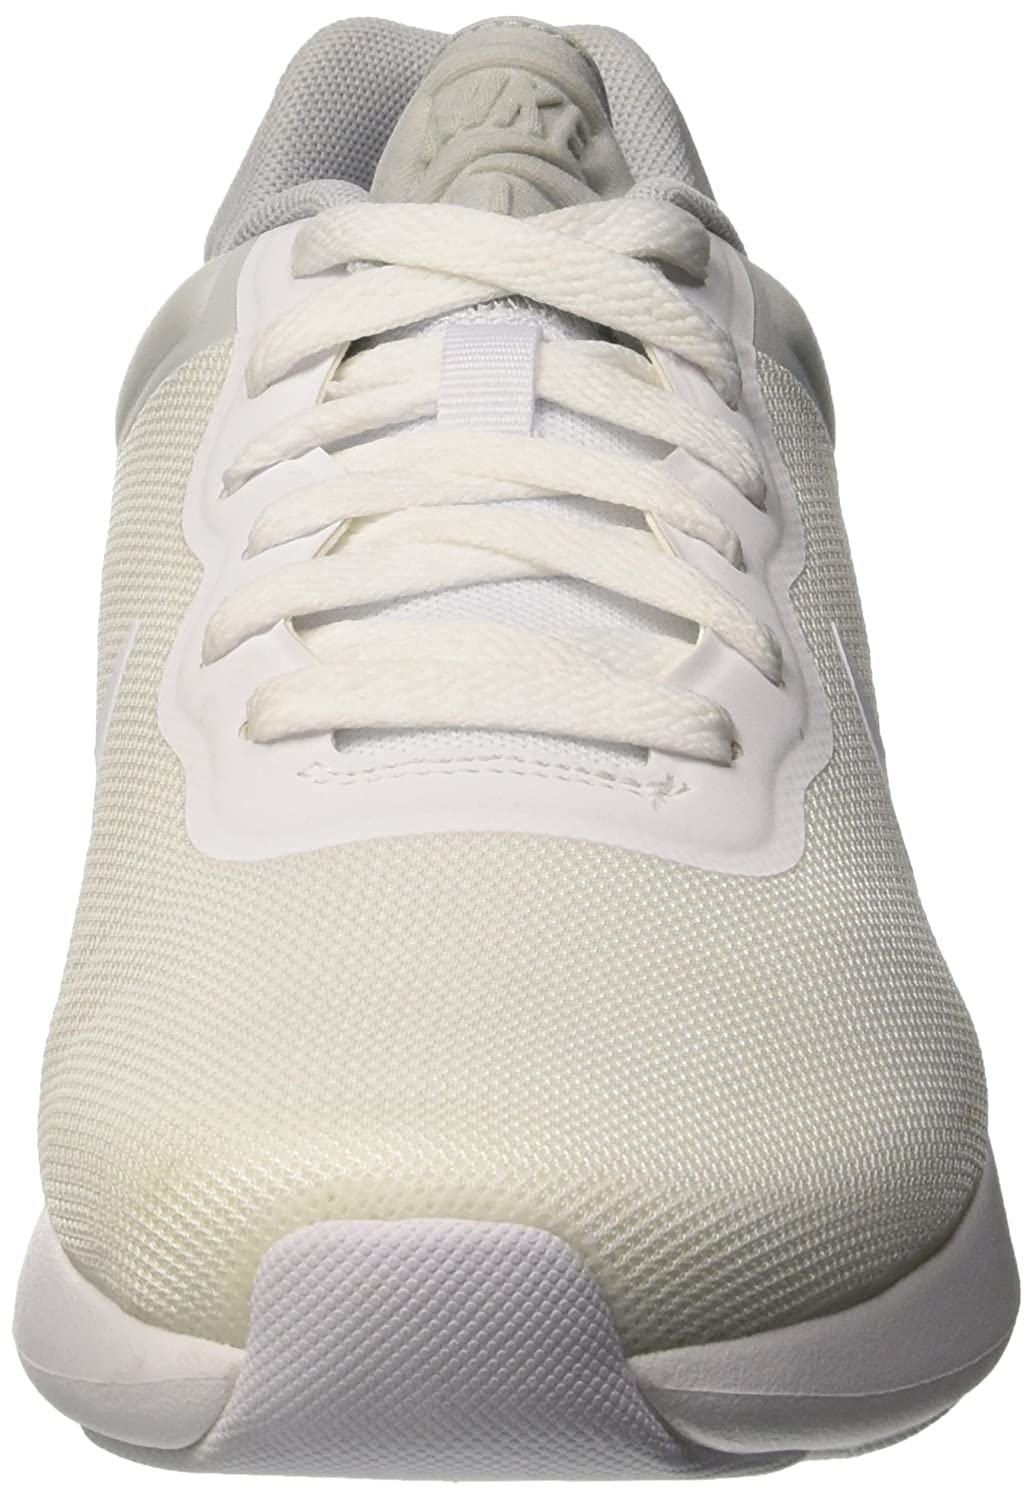 NIKE Air Max Modern Essential Mens Running Trainers 844874 Sneakers US|White,grey Shoes B01HZQW7XY 11 D(M) US|White,grey Sneakers 52a549